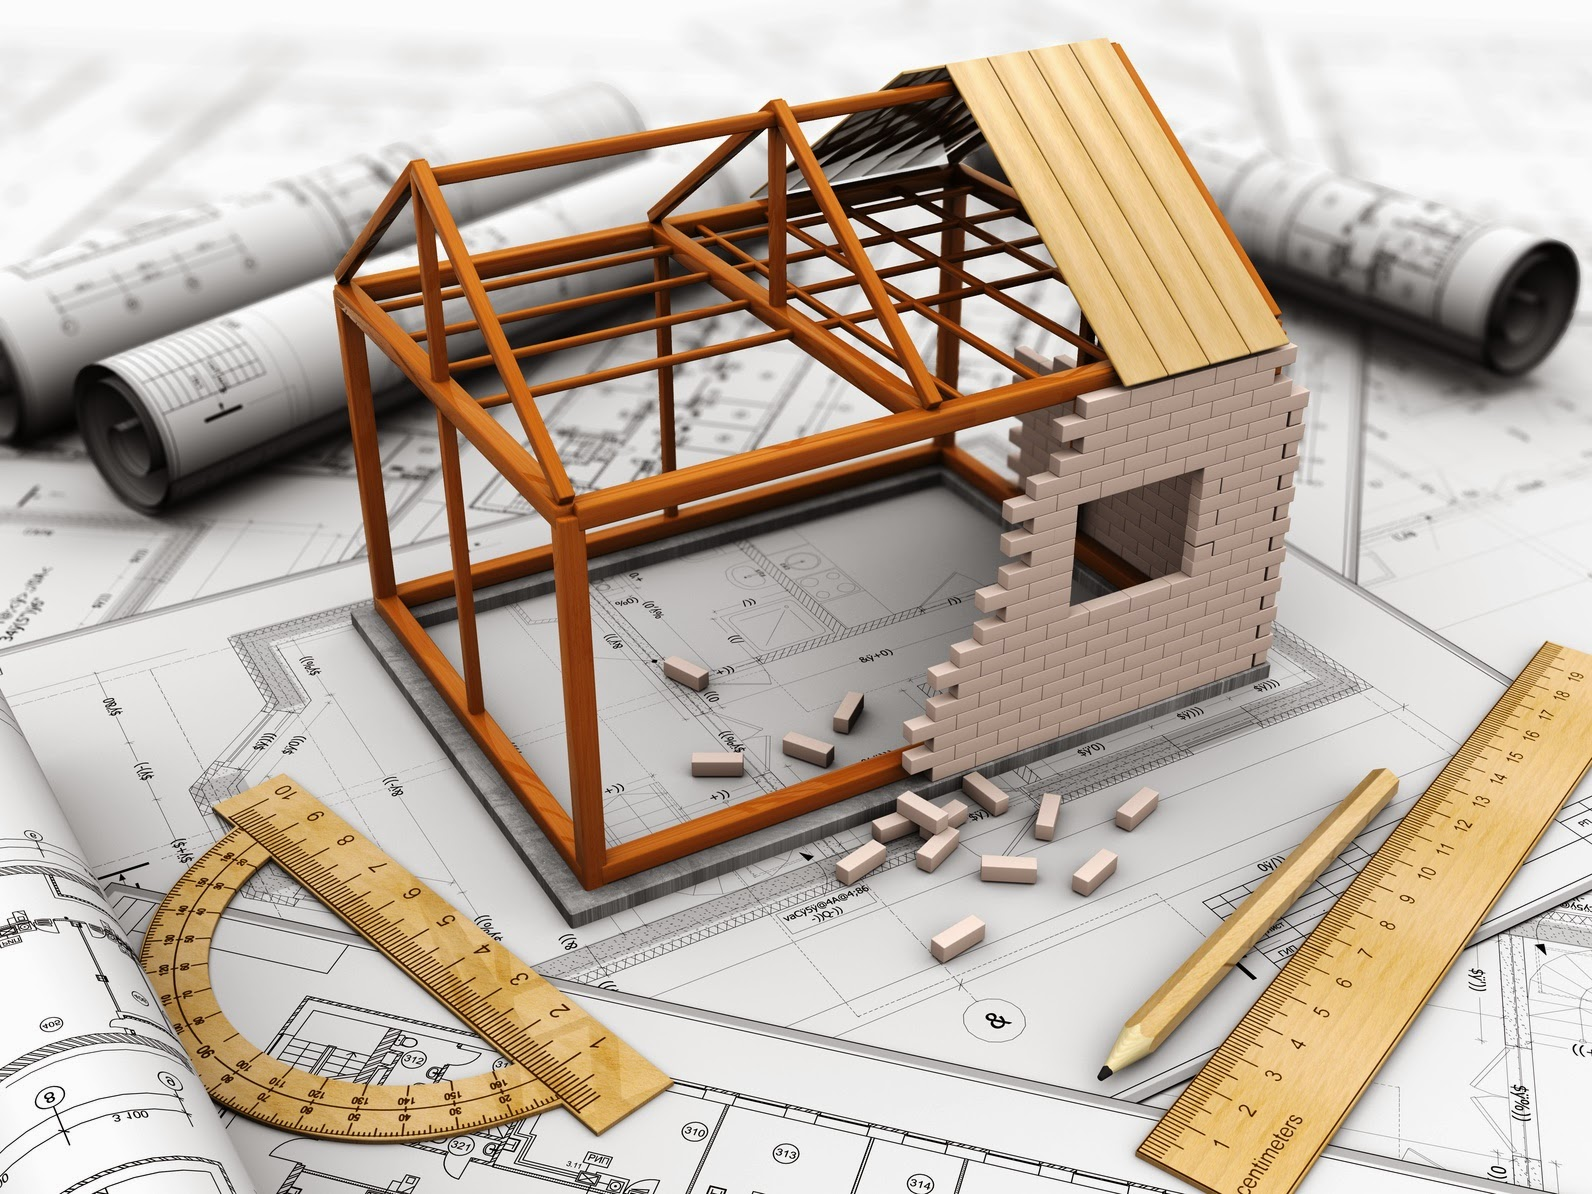 5 Things to Consider When Planning Your Home Design